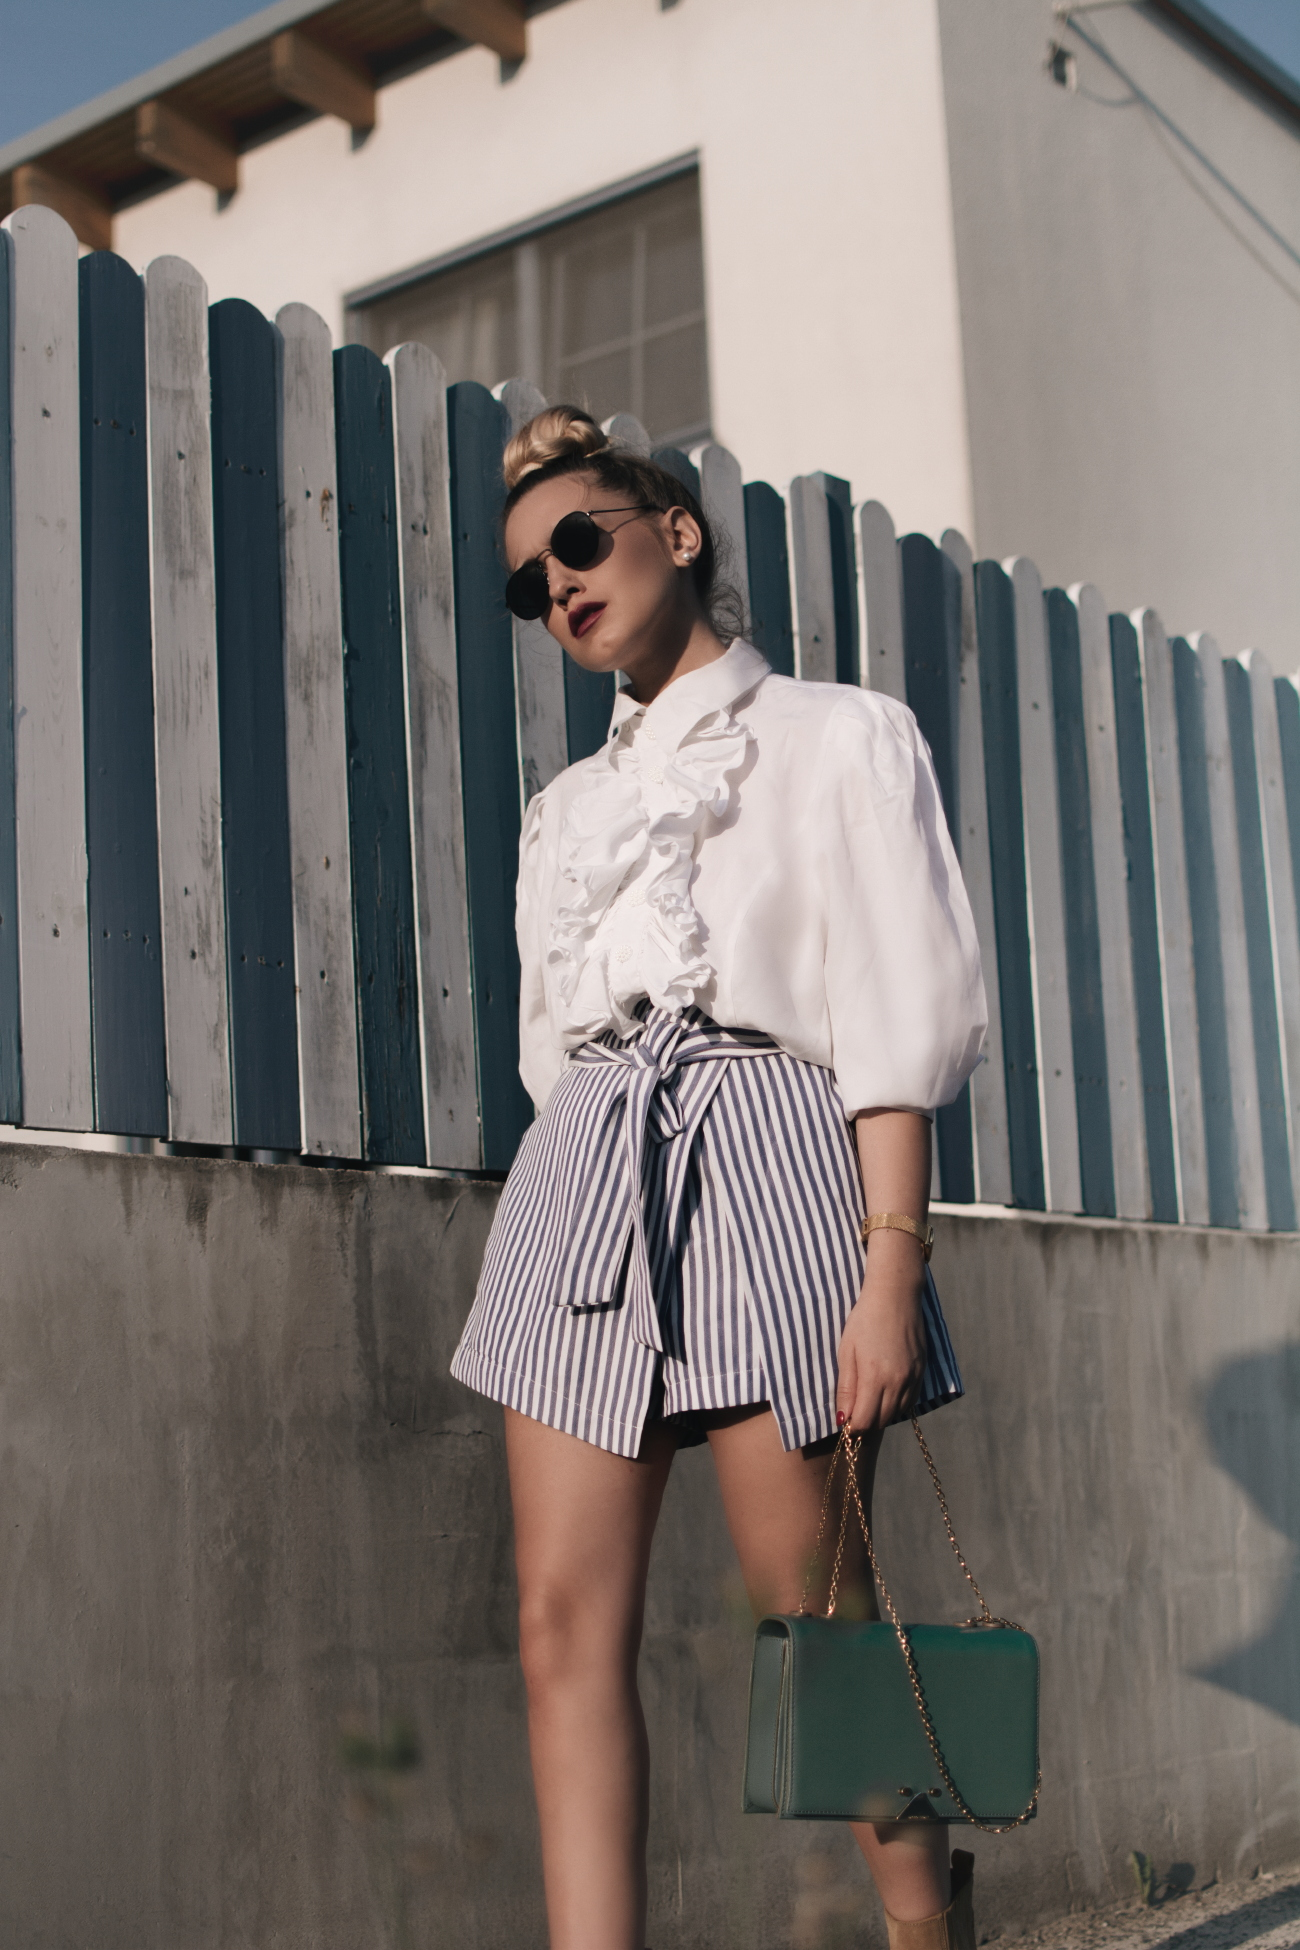 80s vibes via @fleurdemode || Outfit wearing ruffled vintage blouse & striped skirt